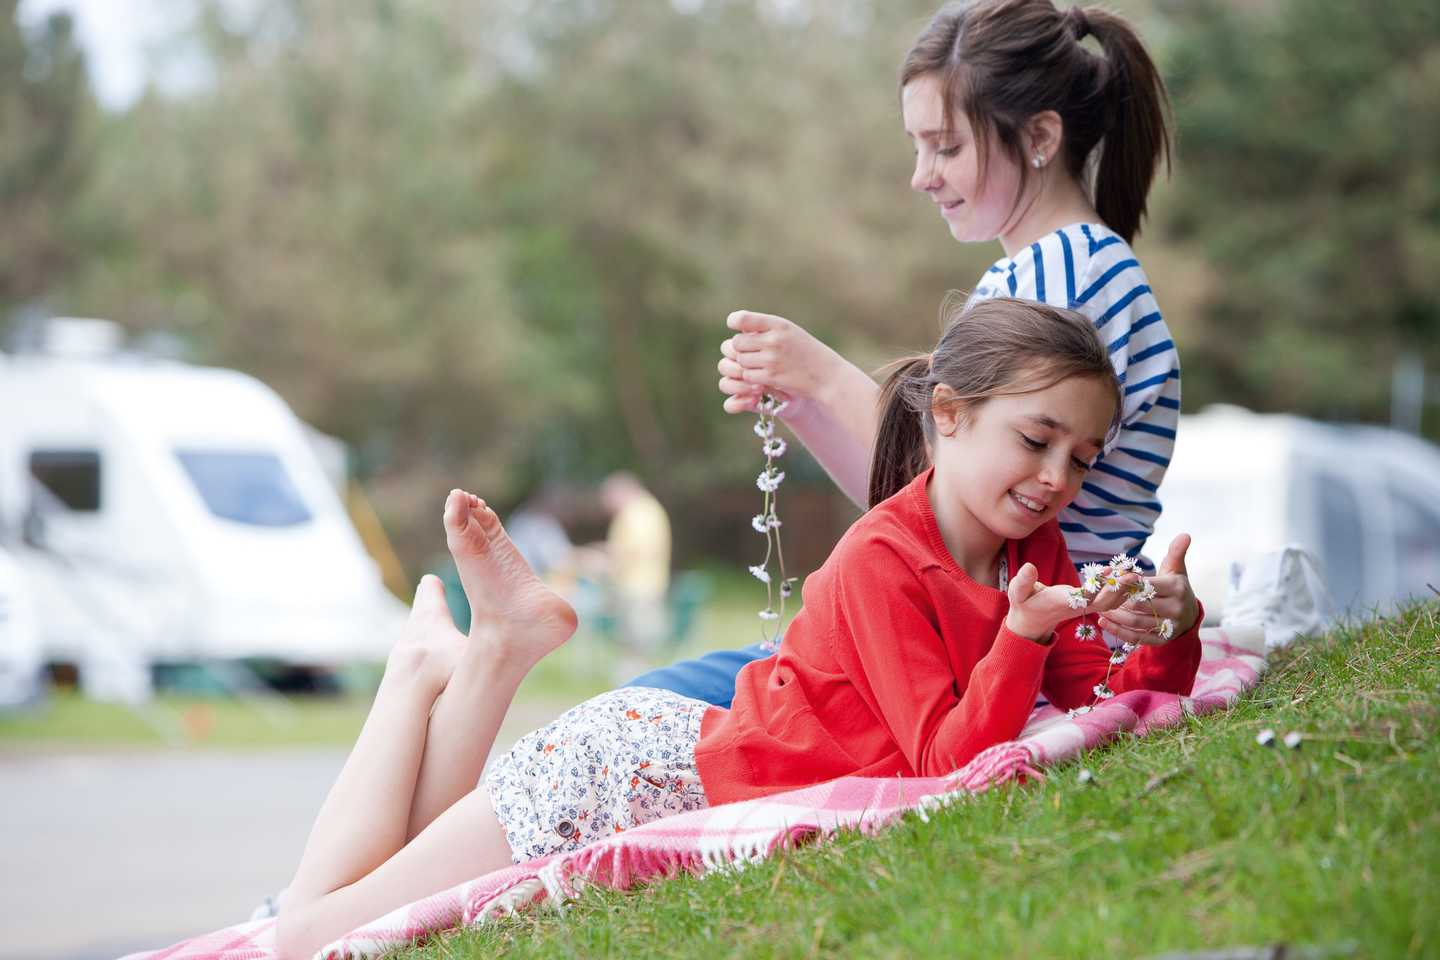 A child and mother making daisy chains in the touring area